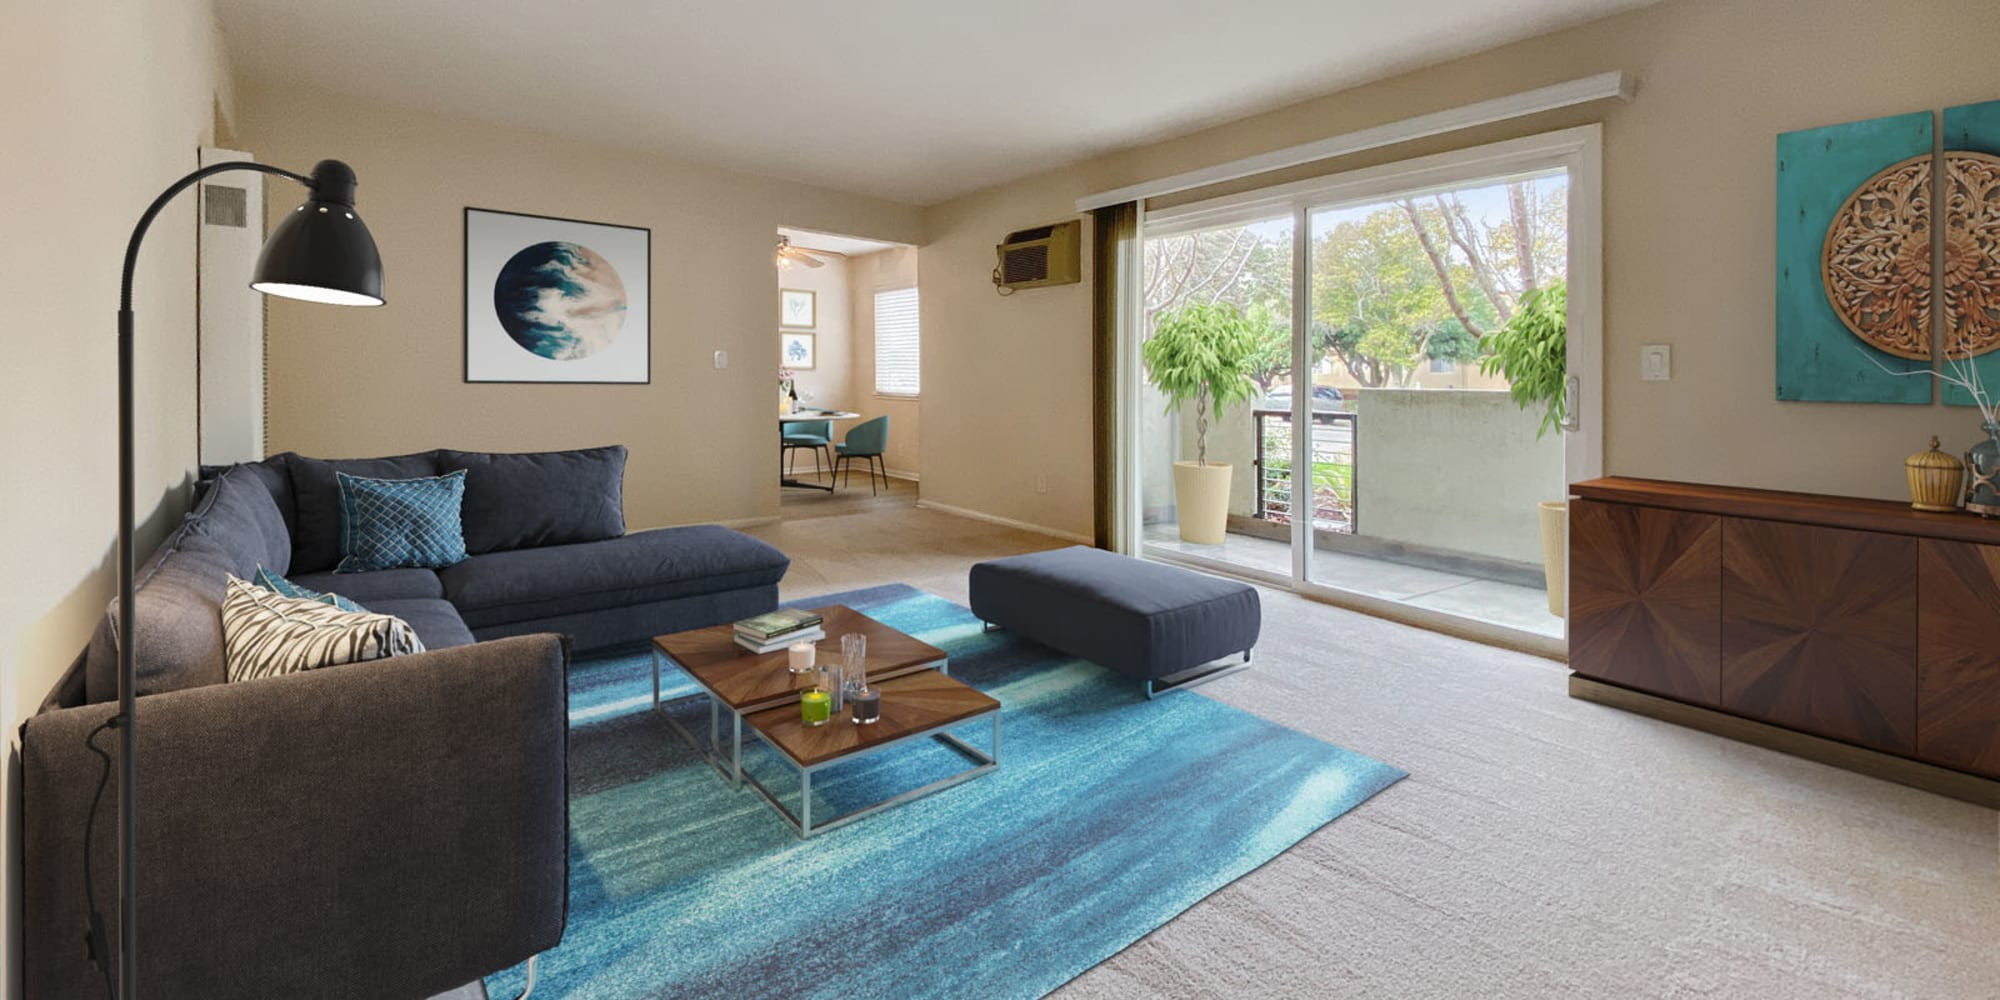 Plush carpeting and modern furnishings in a model home's living area at Pleasanton Place Apartment Homes in Pleasanton, California